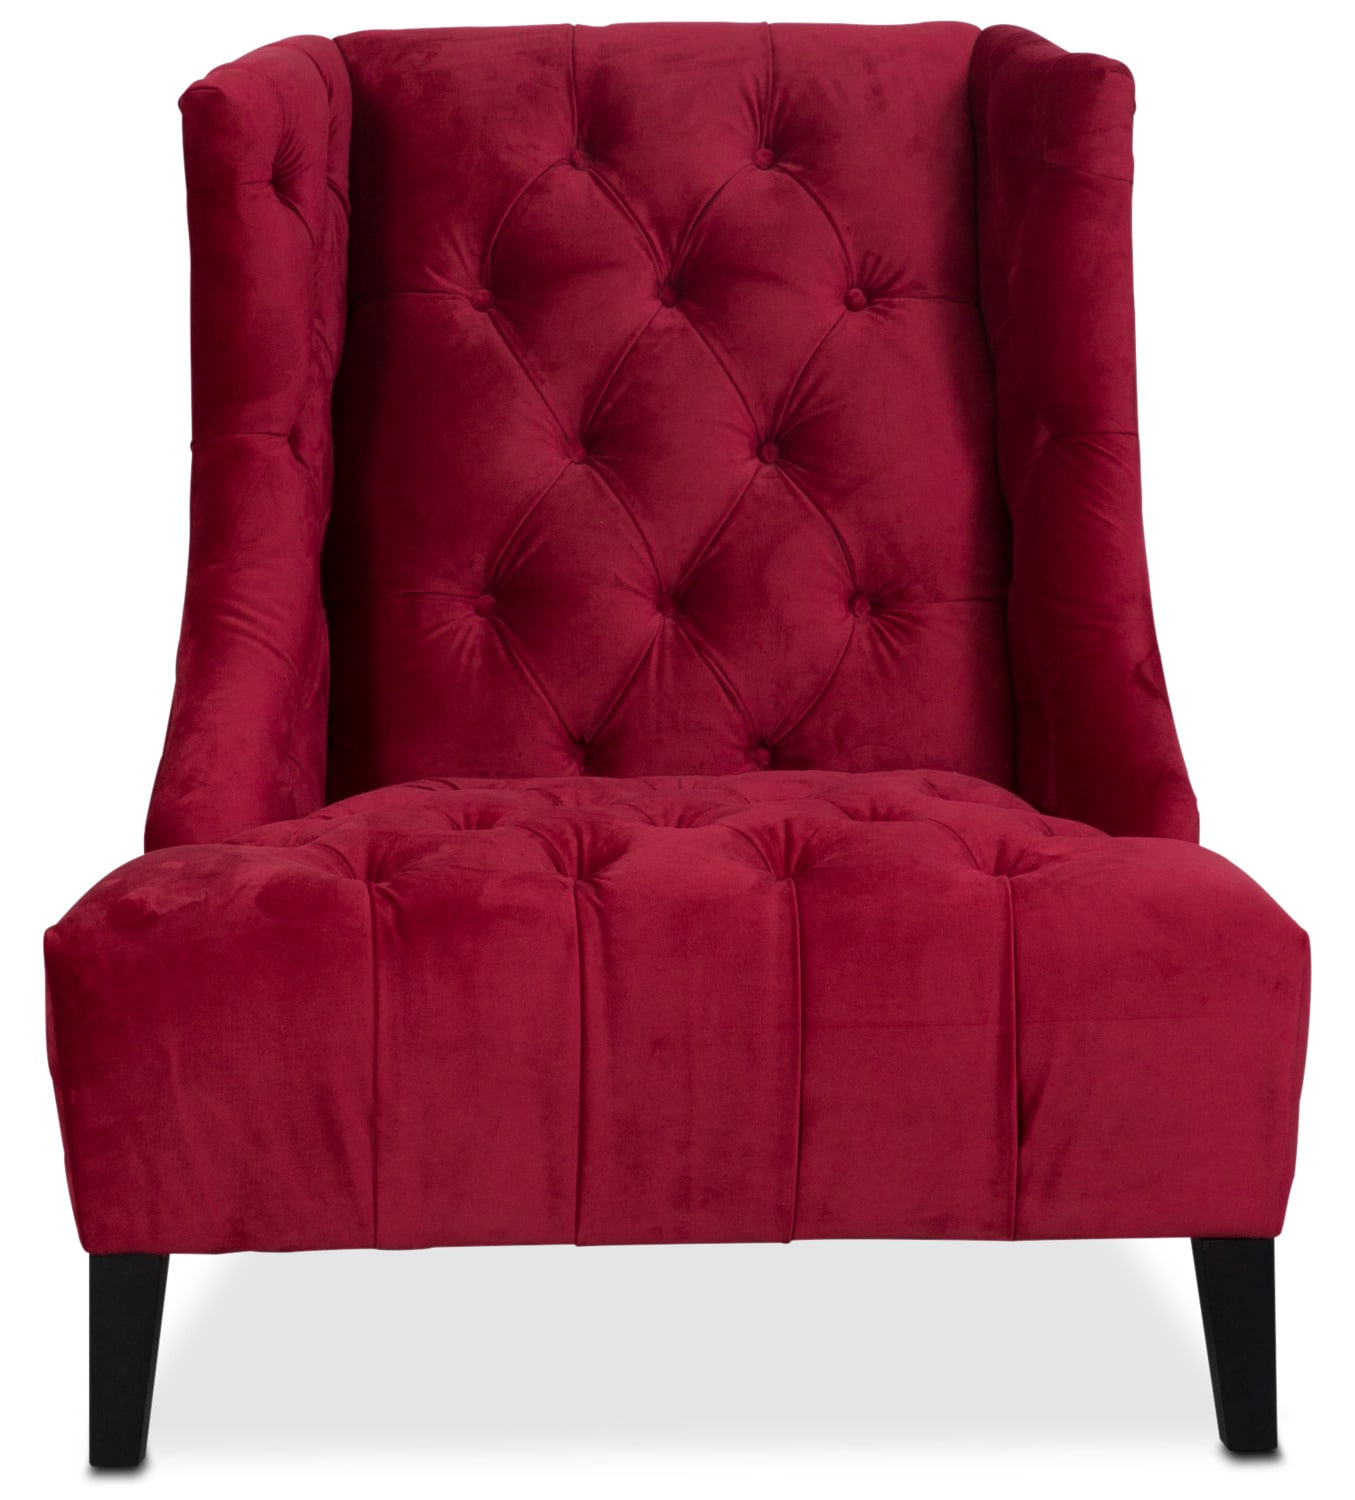 Red velvet chair - Click To Change Image